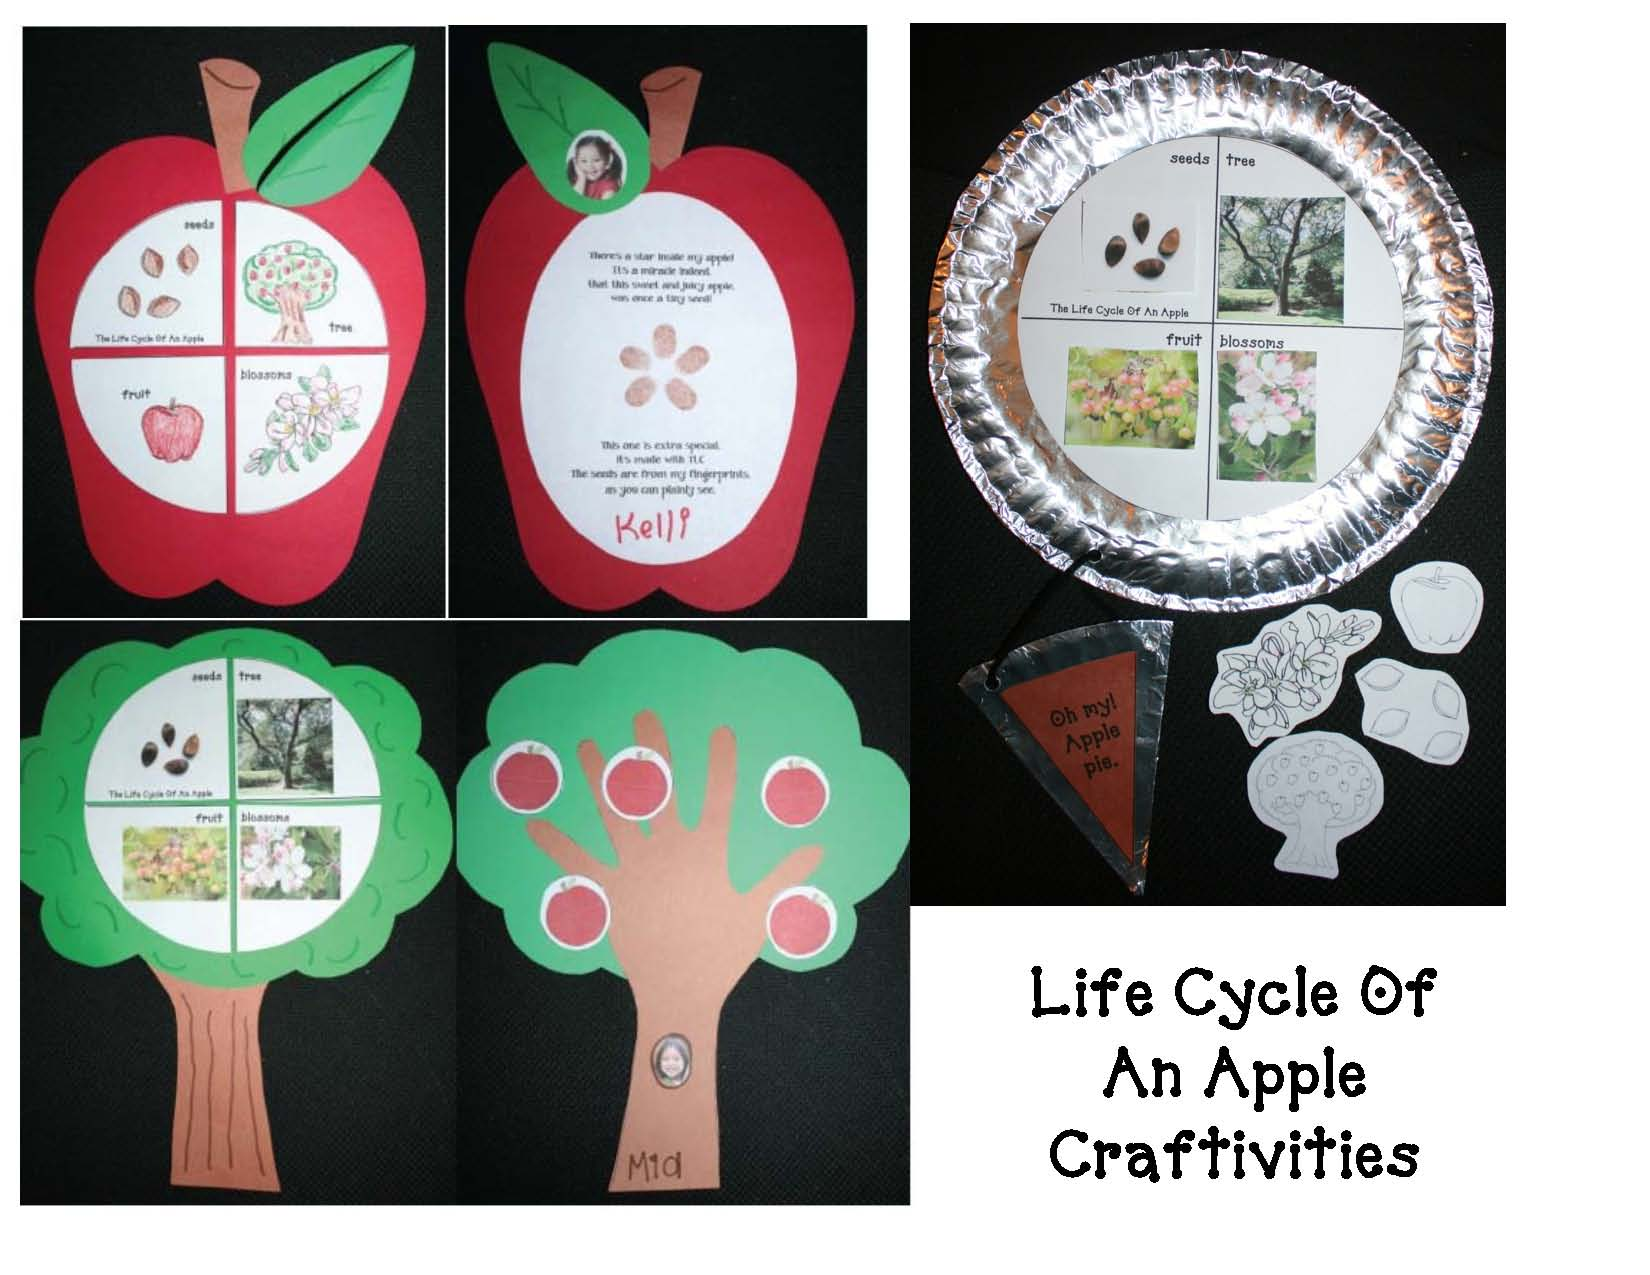 apple bibliography, list of apple books, apple crafts, life cycle of an apple, measurement activities, measuring apples, Johnny appleseed activities, johnny appleseed crafts, 125 apple facts, apple facts,